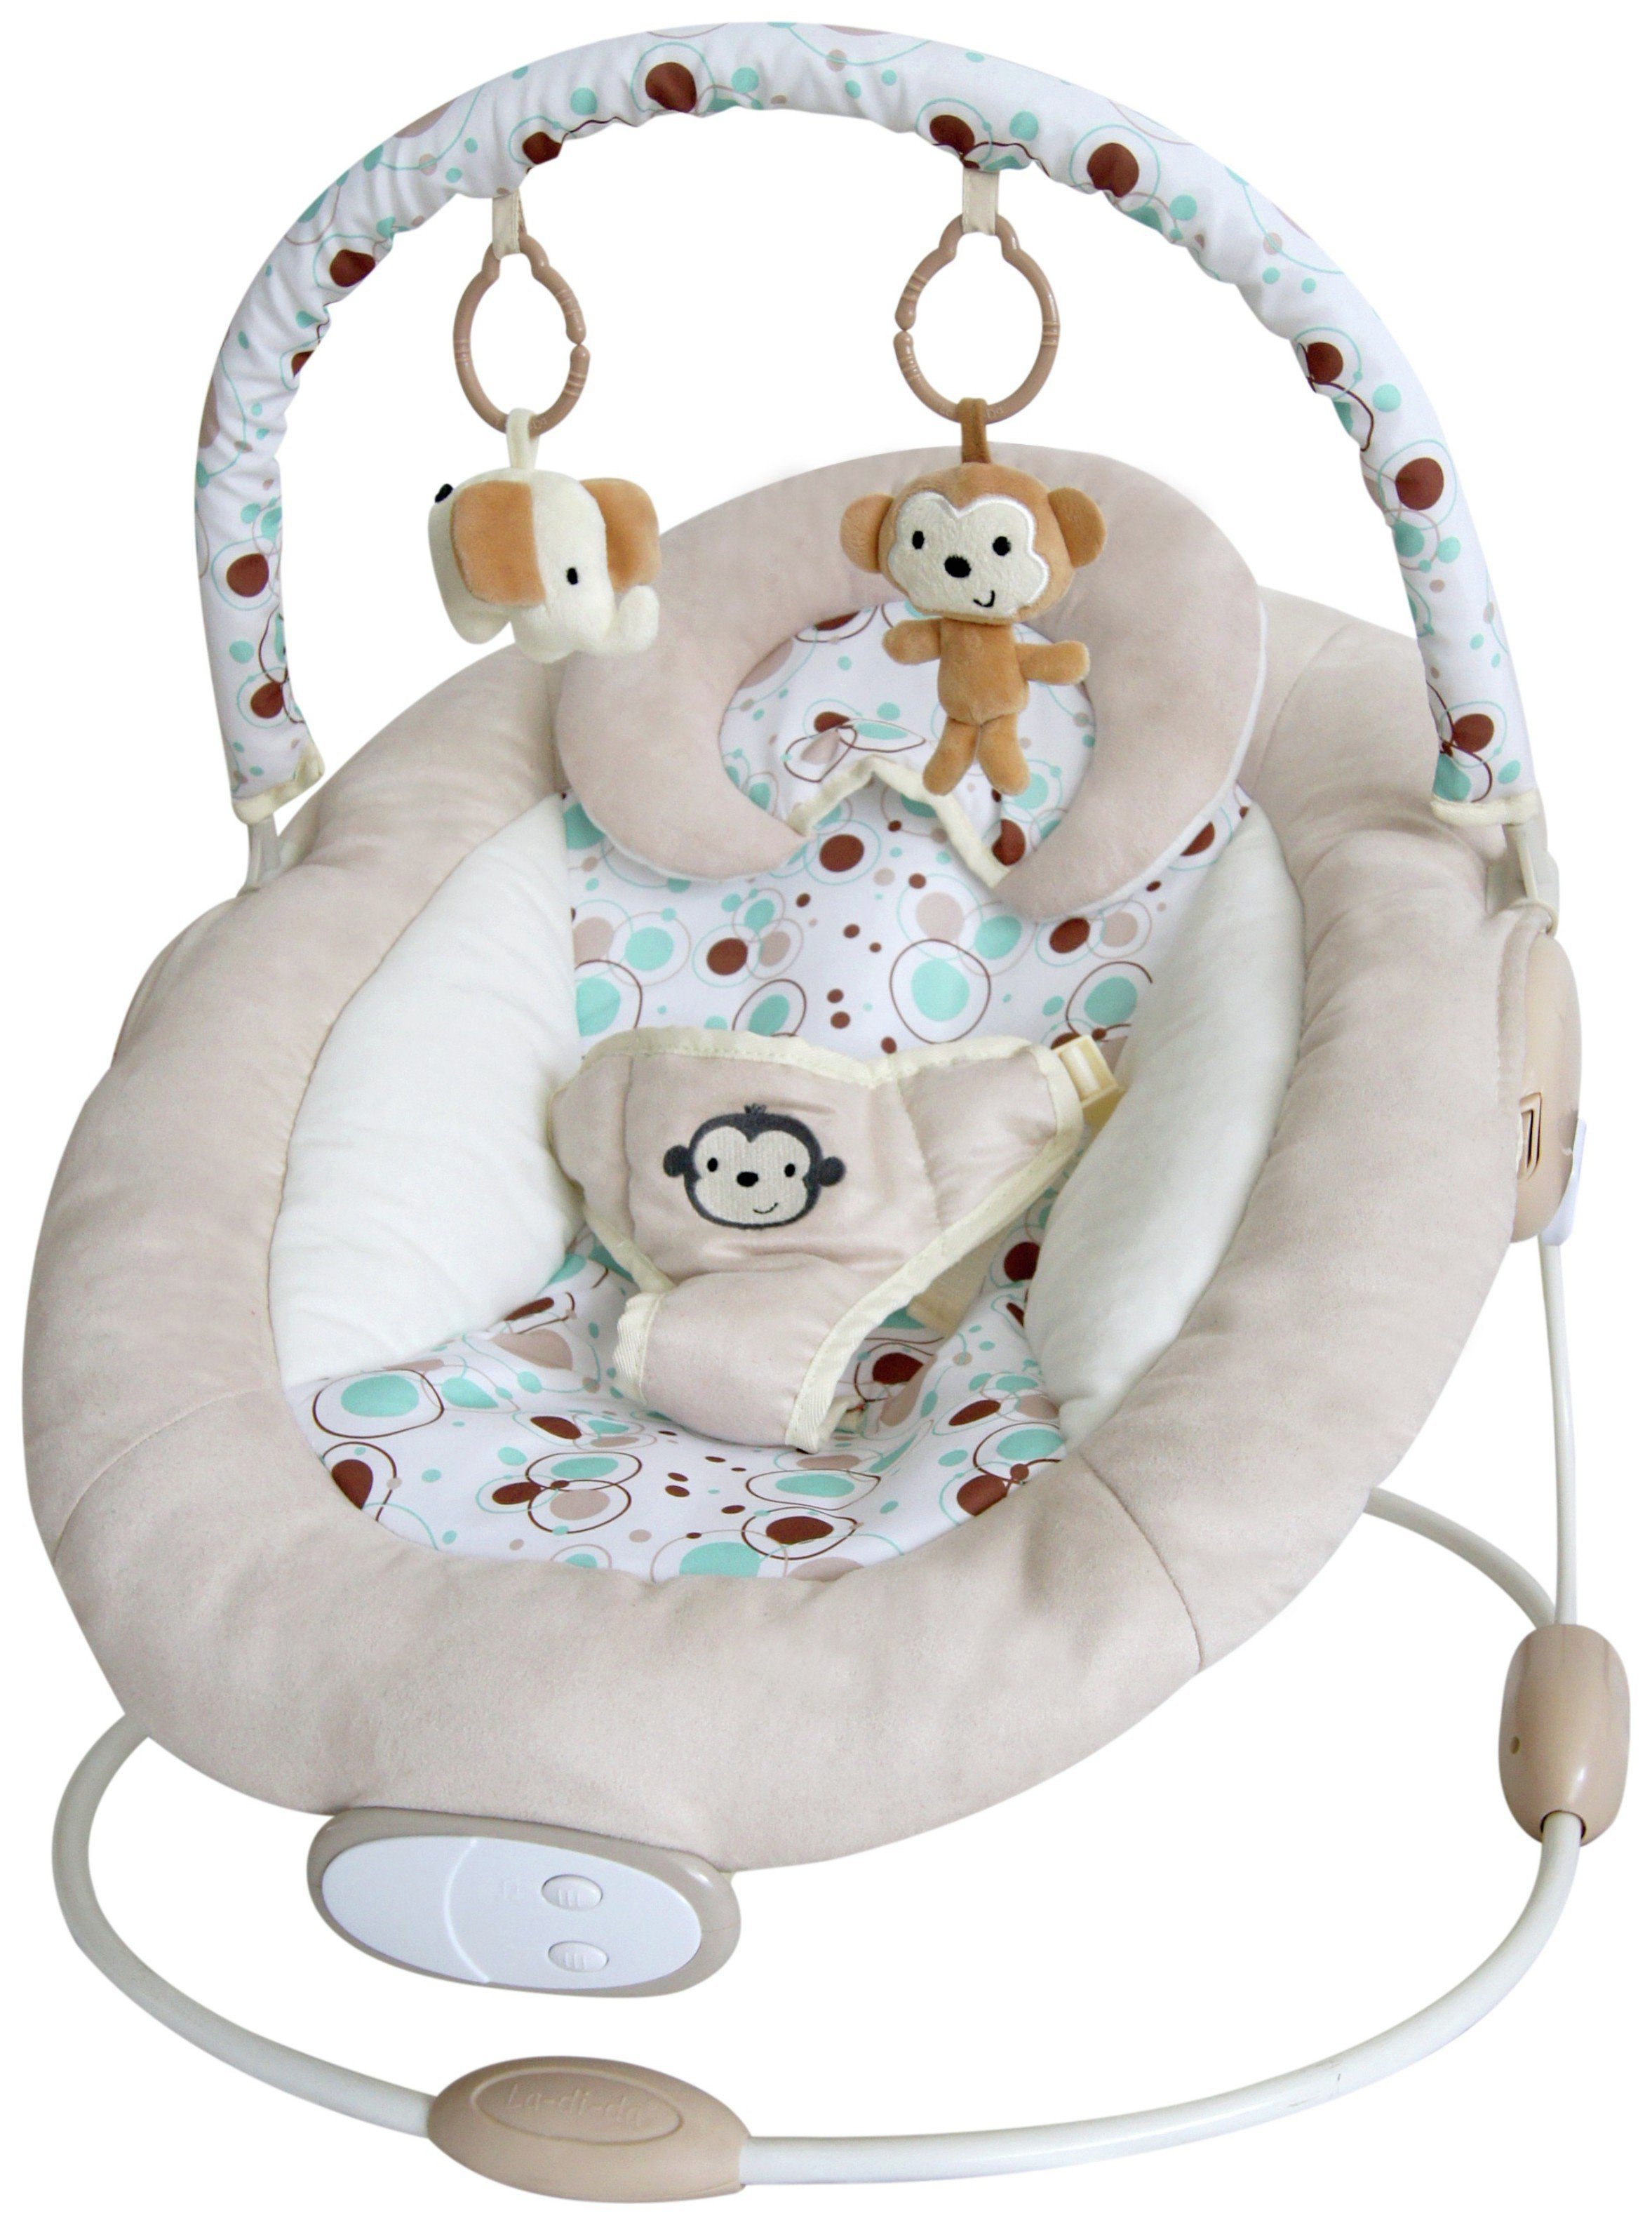 BeBe Style Comfiplus Floating Baby Cradle Best Price, Cheapest Prices